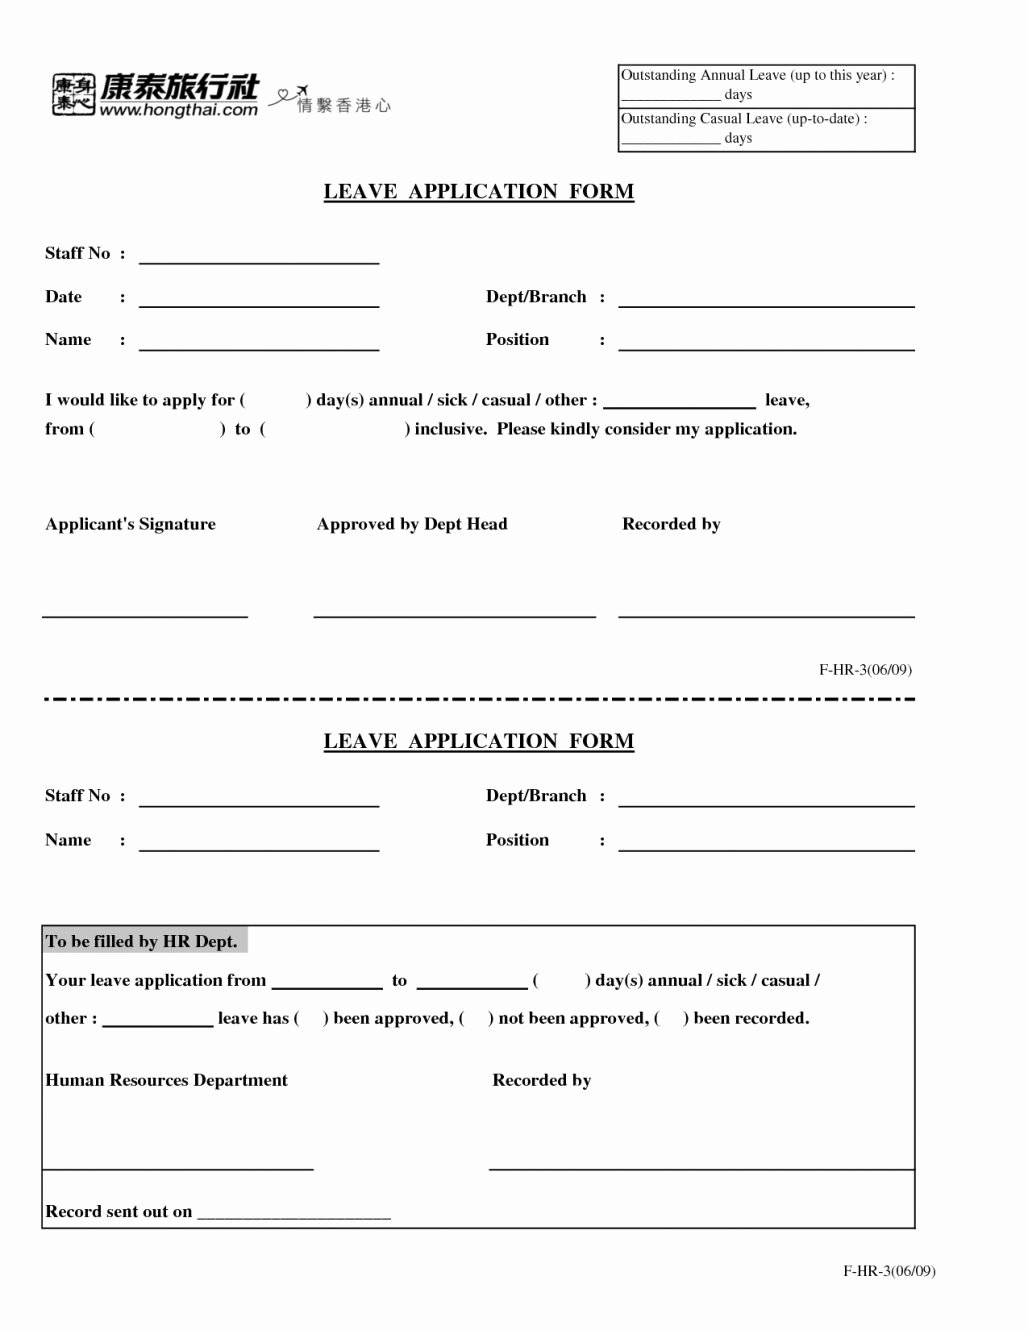 Design Request form Template New 10 Employee Leave form